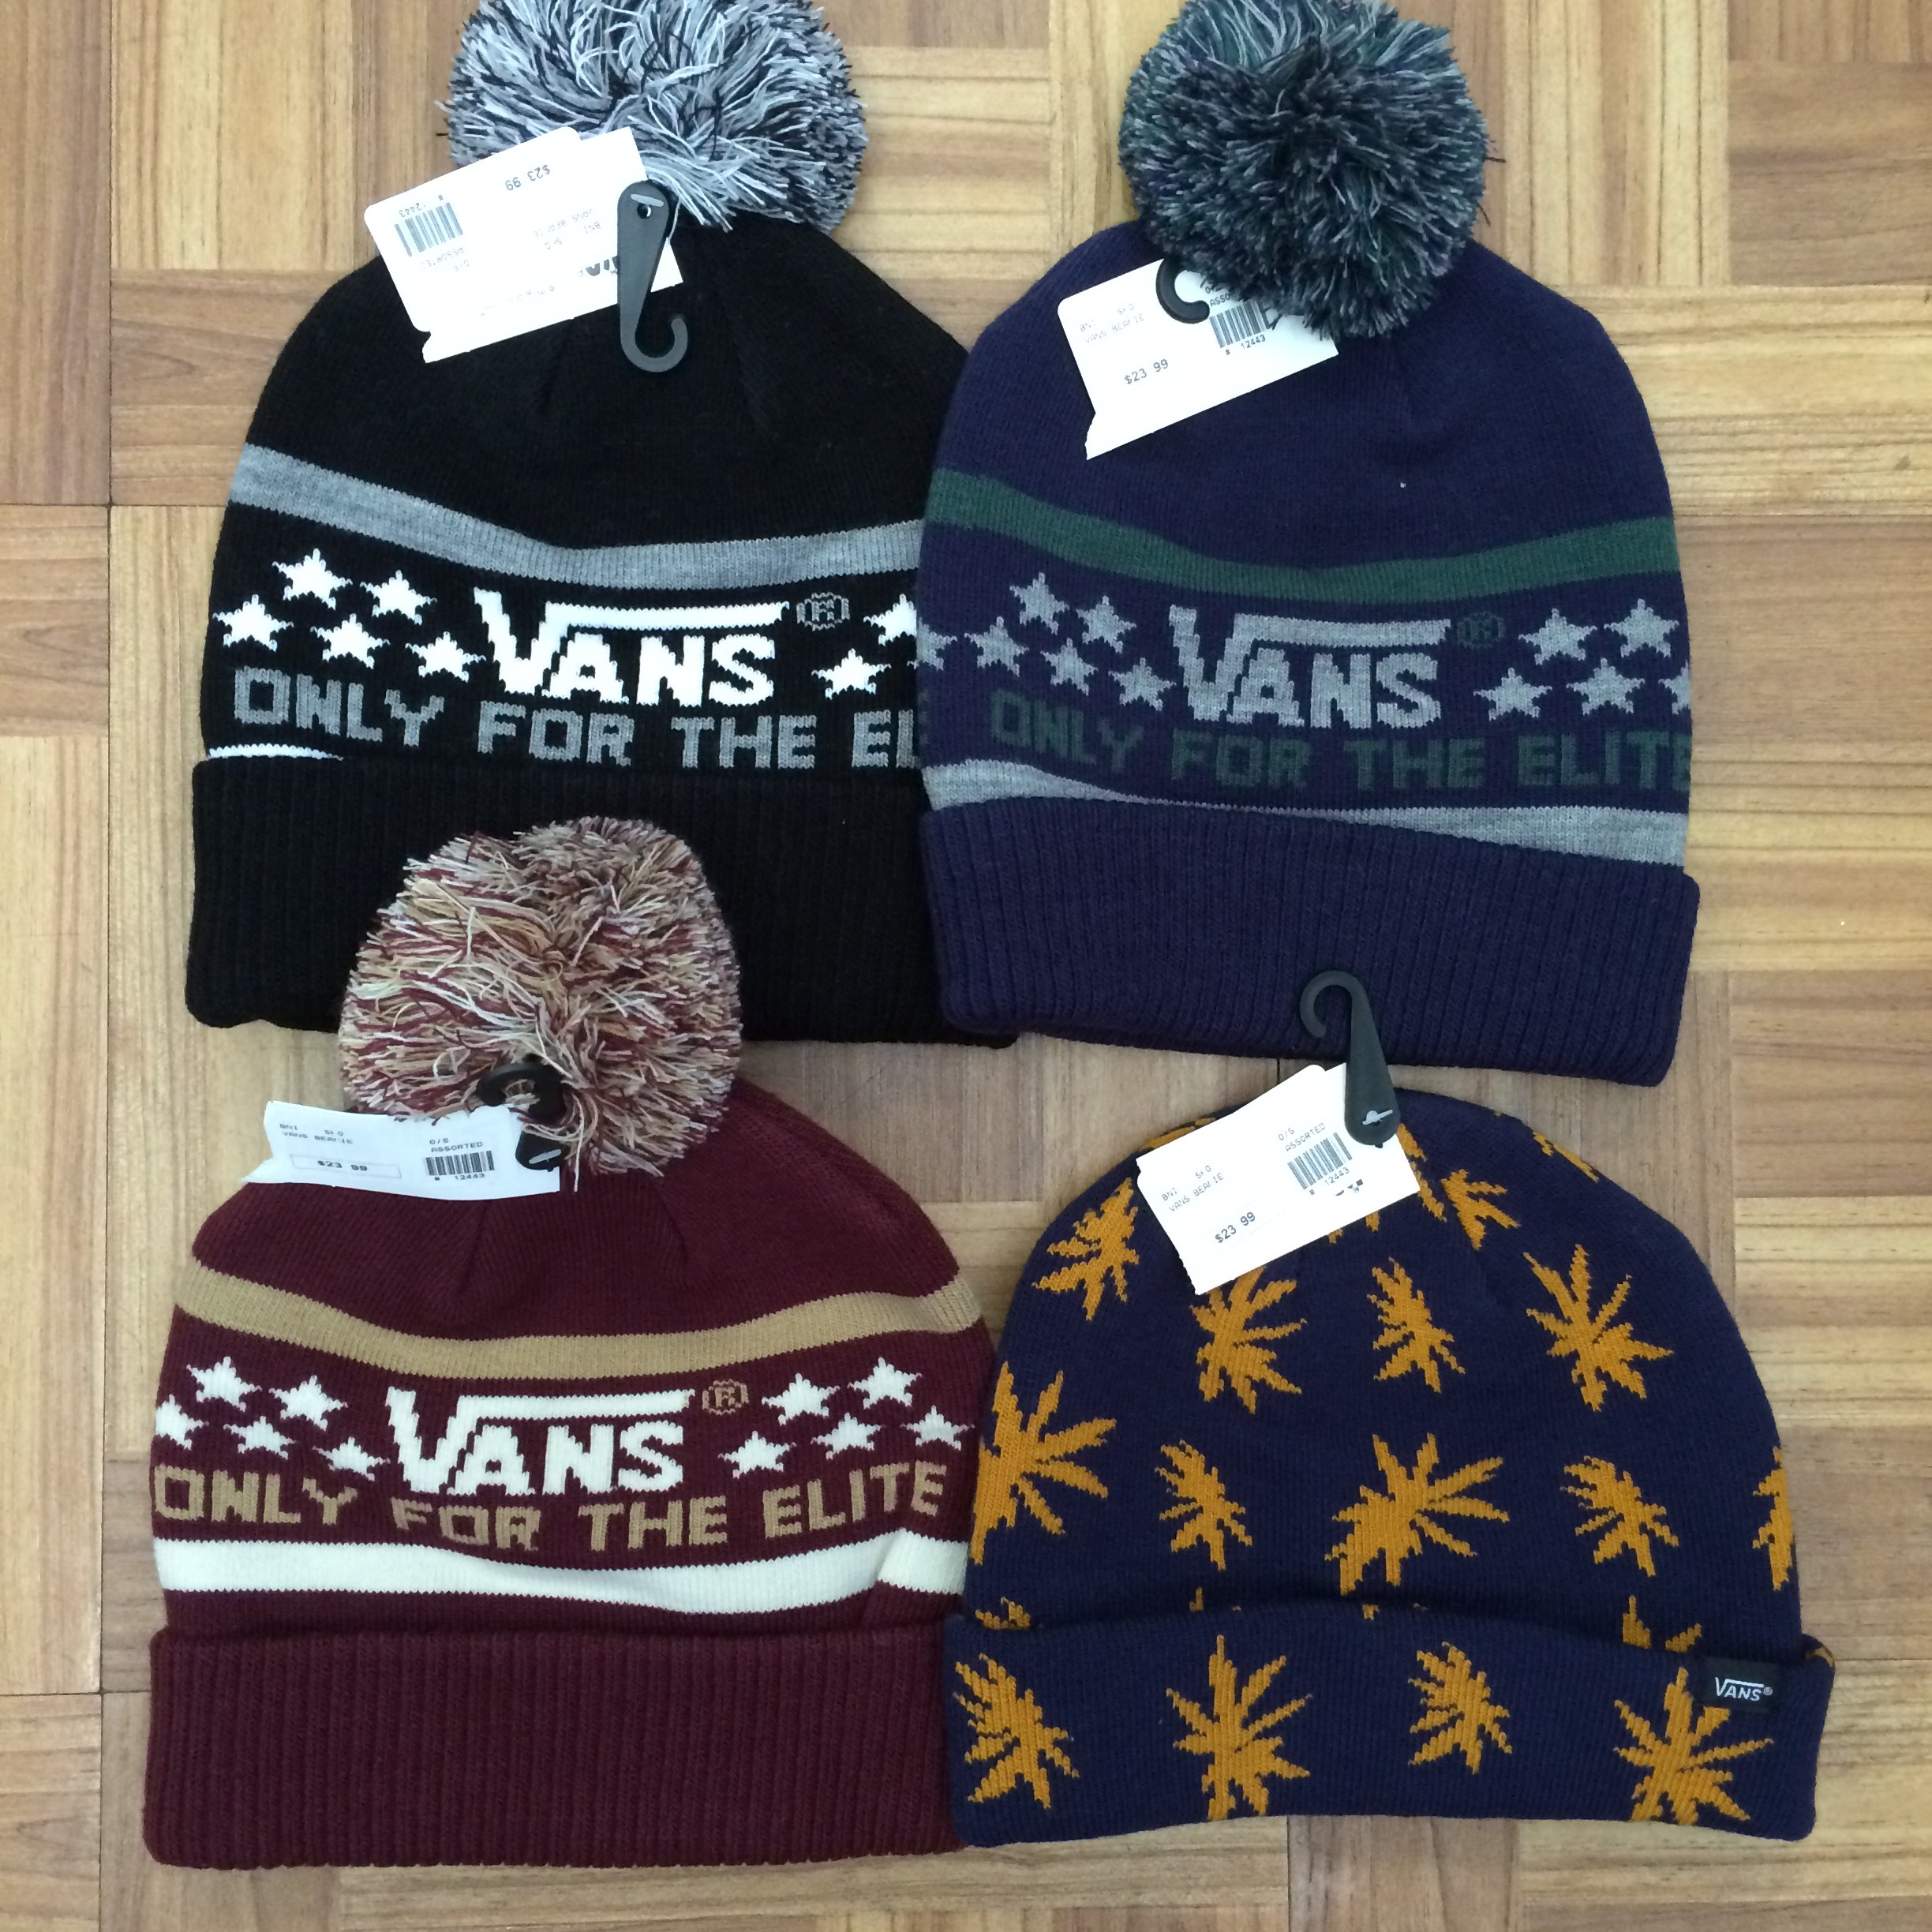 f7fb4907300d New From Vans Apparel Are Beanies, Tee's, Hoodies, Long Sleeves, & Crew  Necks. Available NOW At Our Harofrd Rd Location